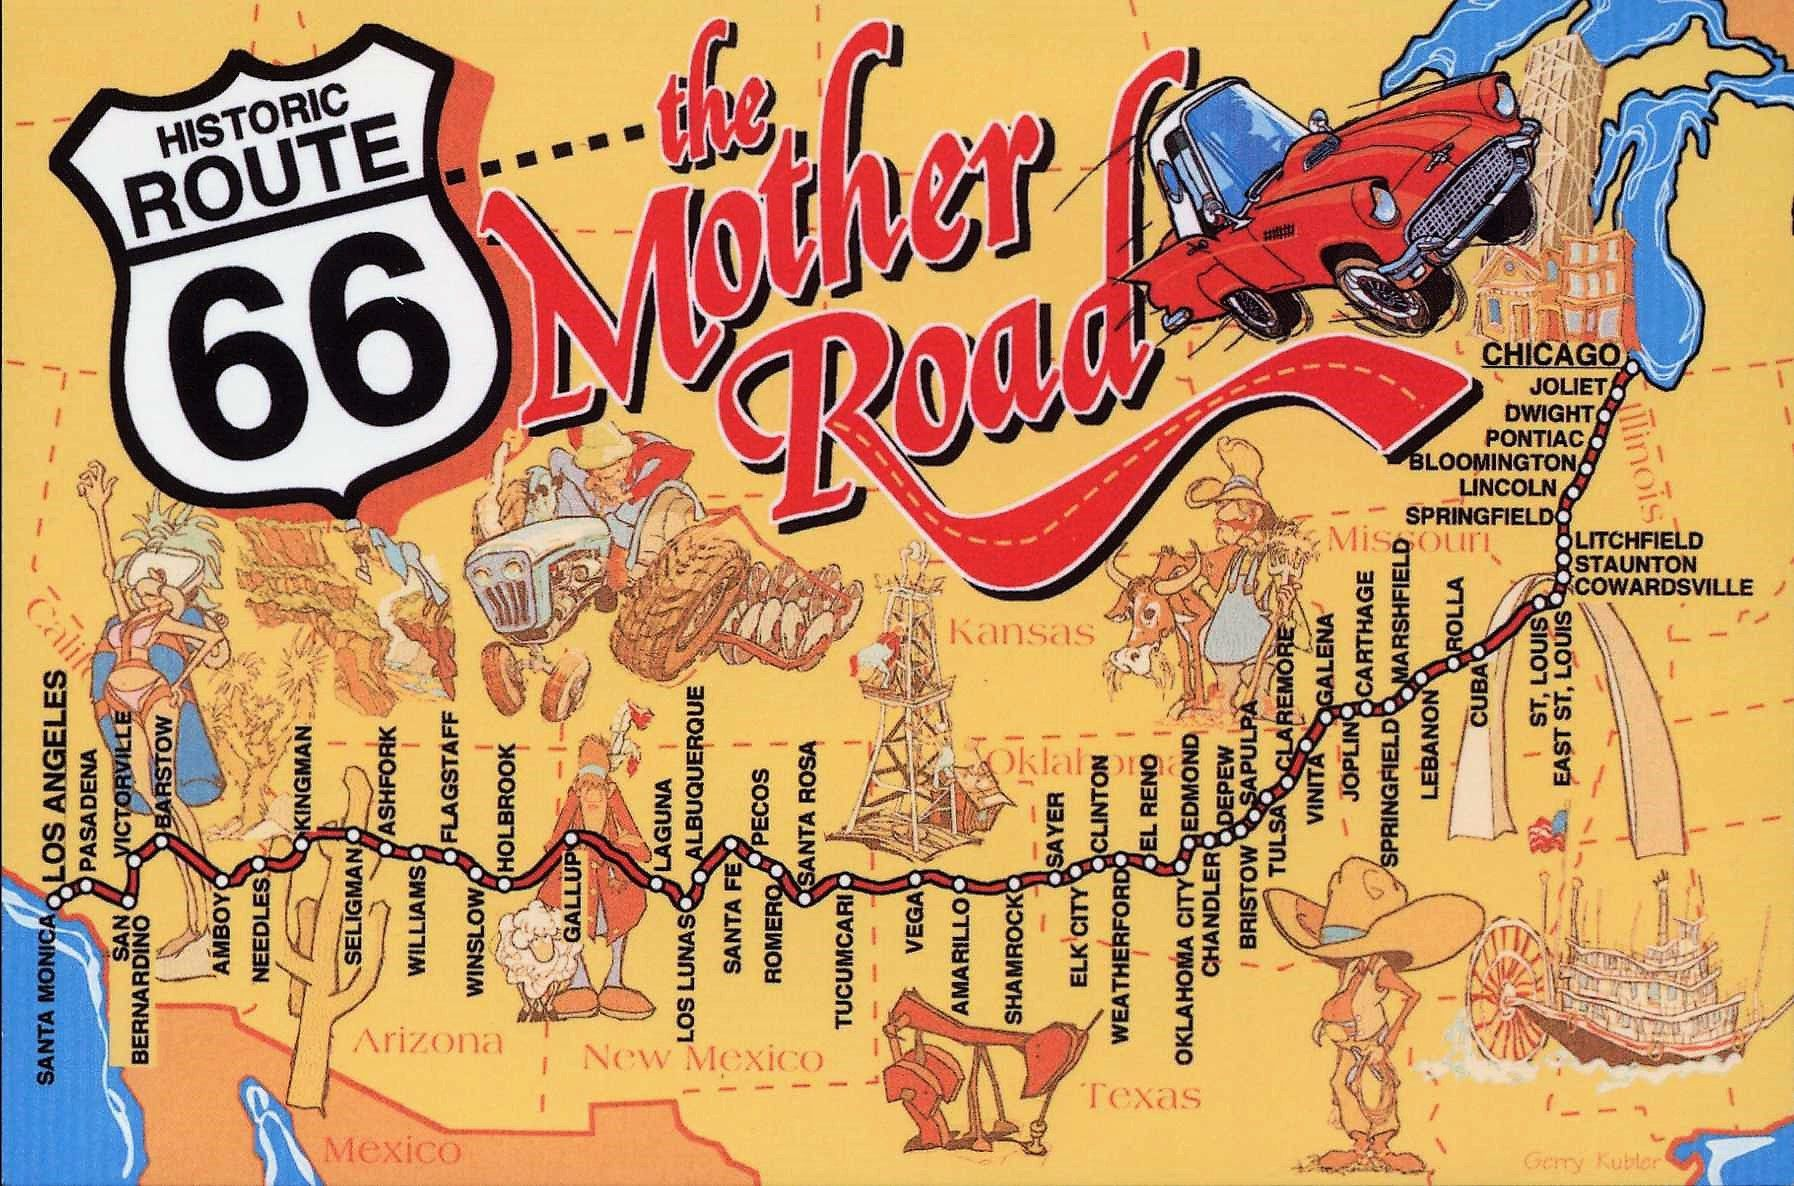 Road Trip Pa Route 66 Med Car Wizard Som Guide Pa The Mother Road